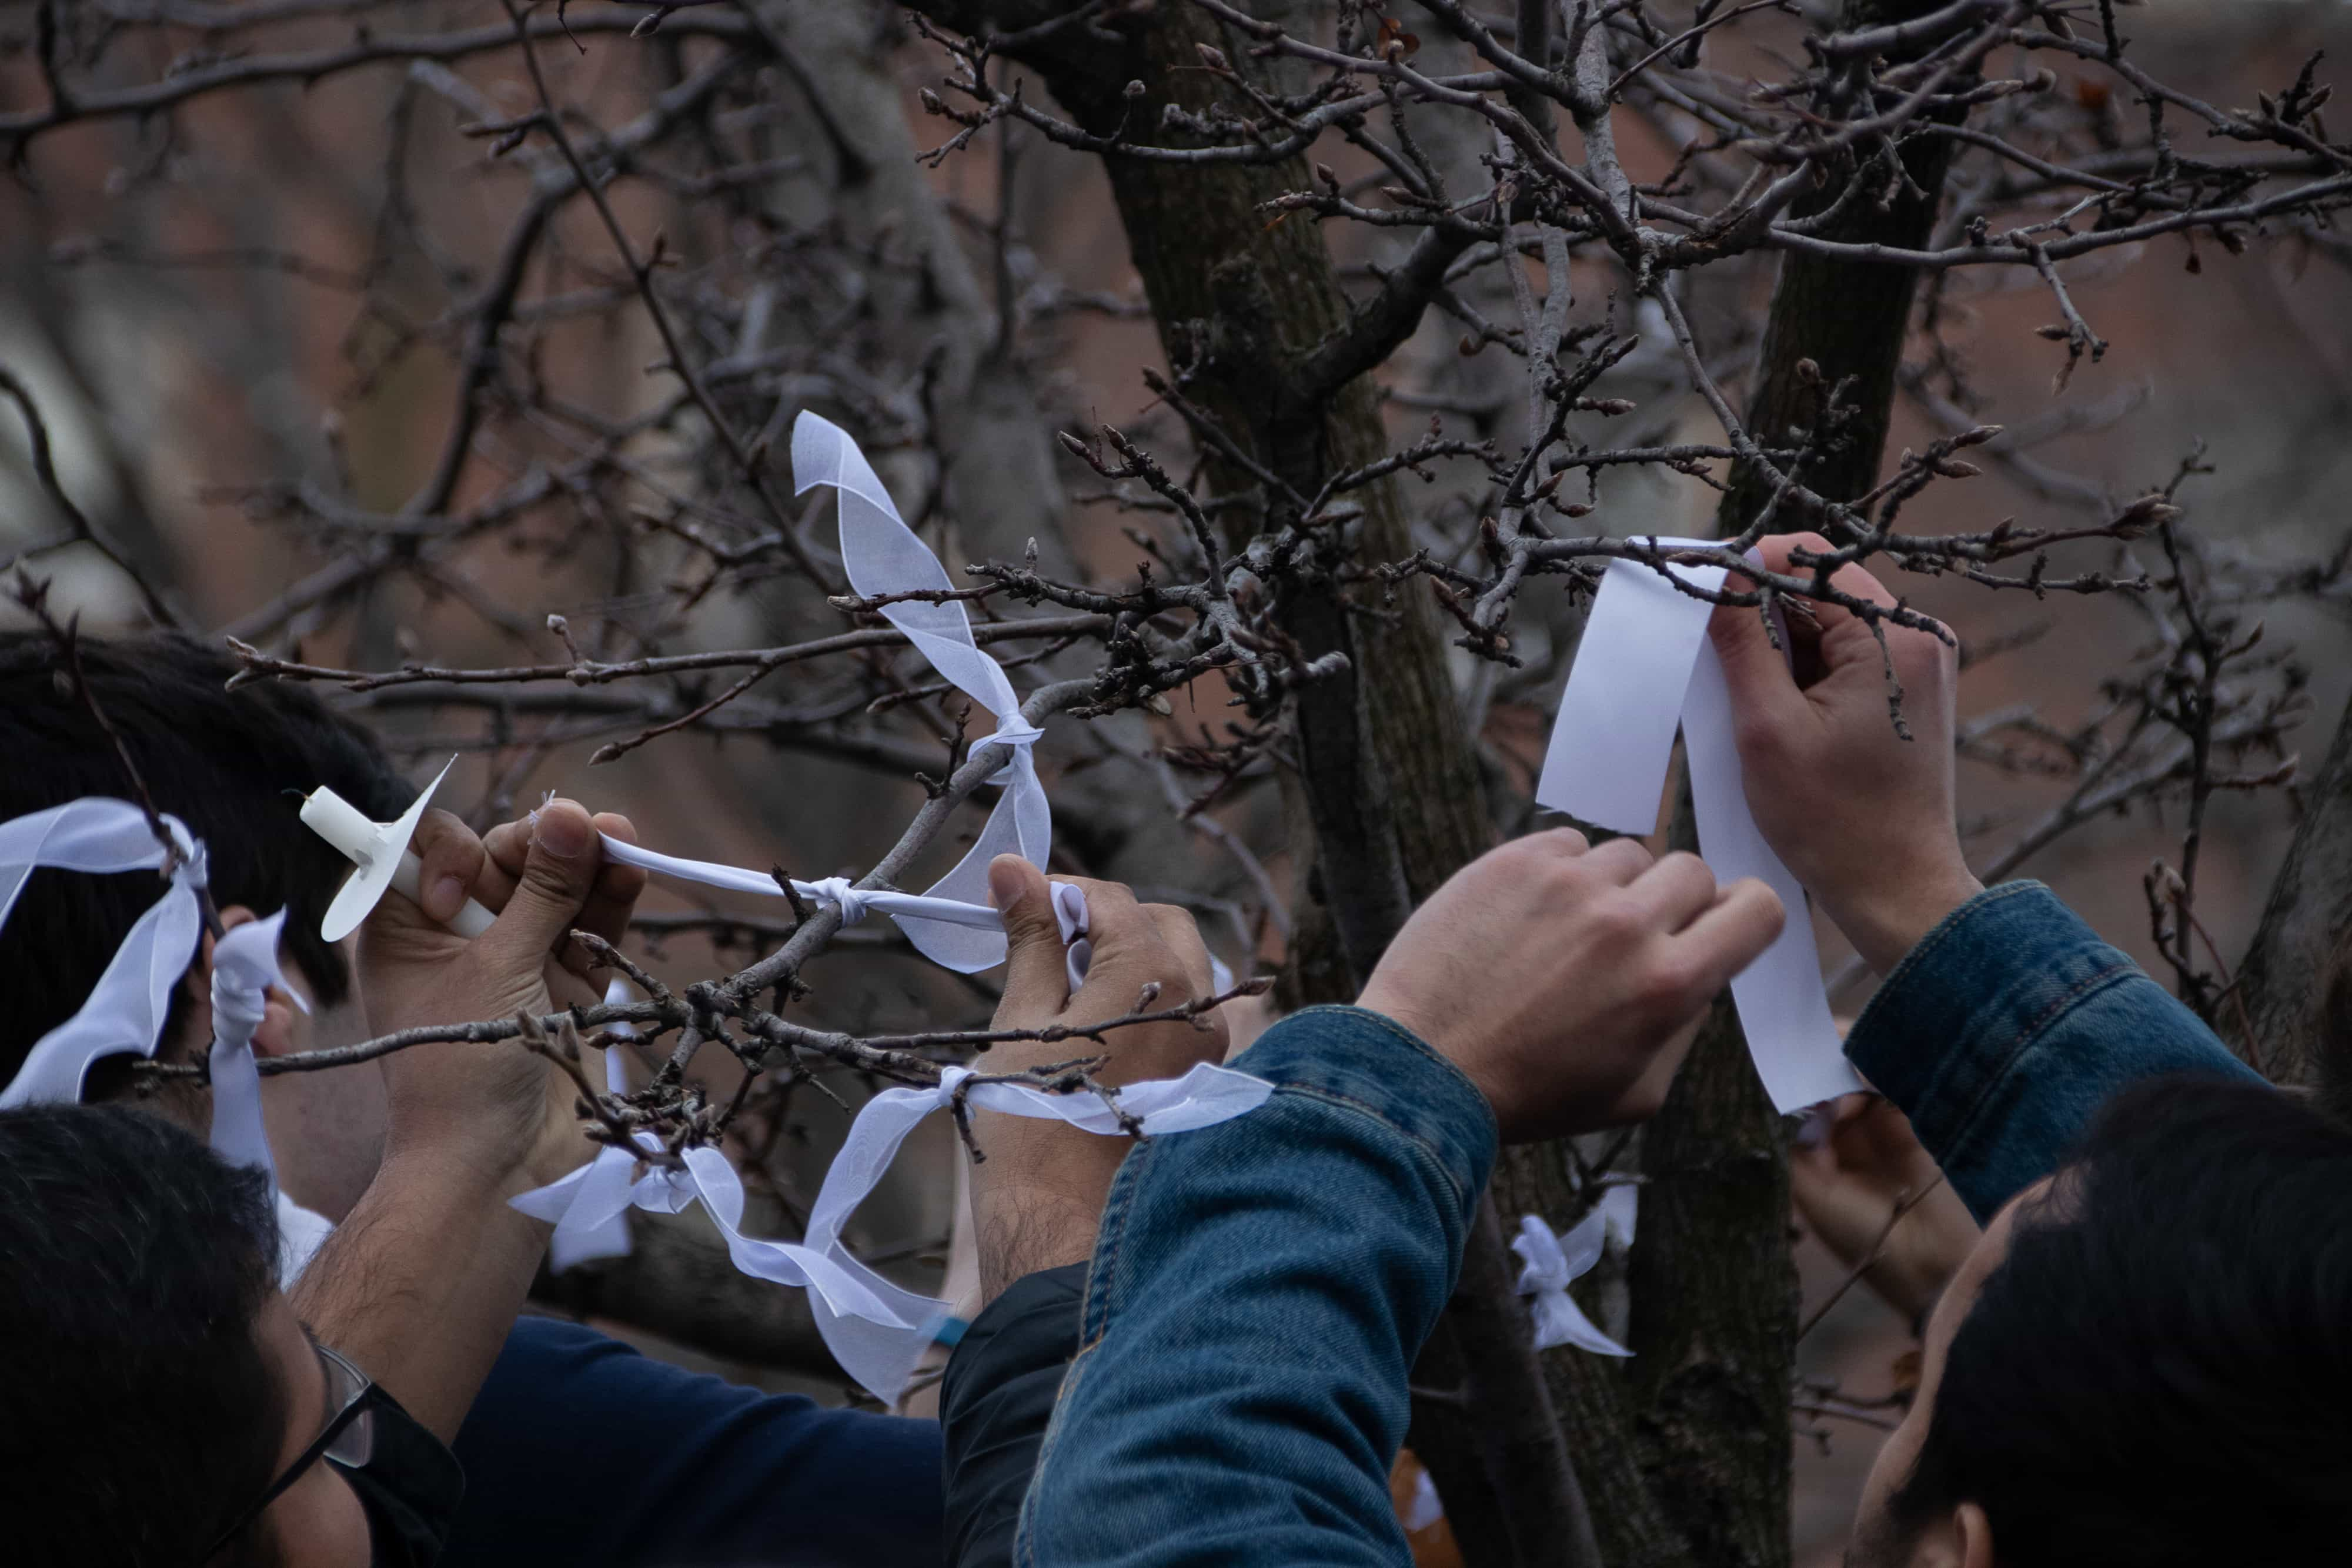 Community members tie white ribbons around the trees in front of Hendricks Chapel on Tuesday, March 19, 2019, in memory of those who where lost in the mass shootings in Christchurch, New Zealand.